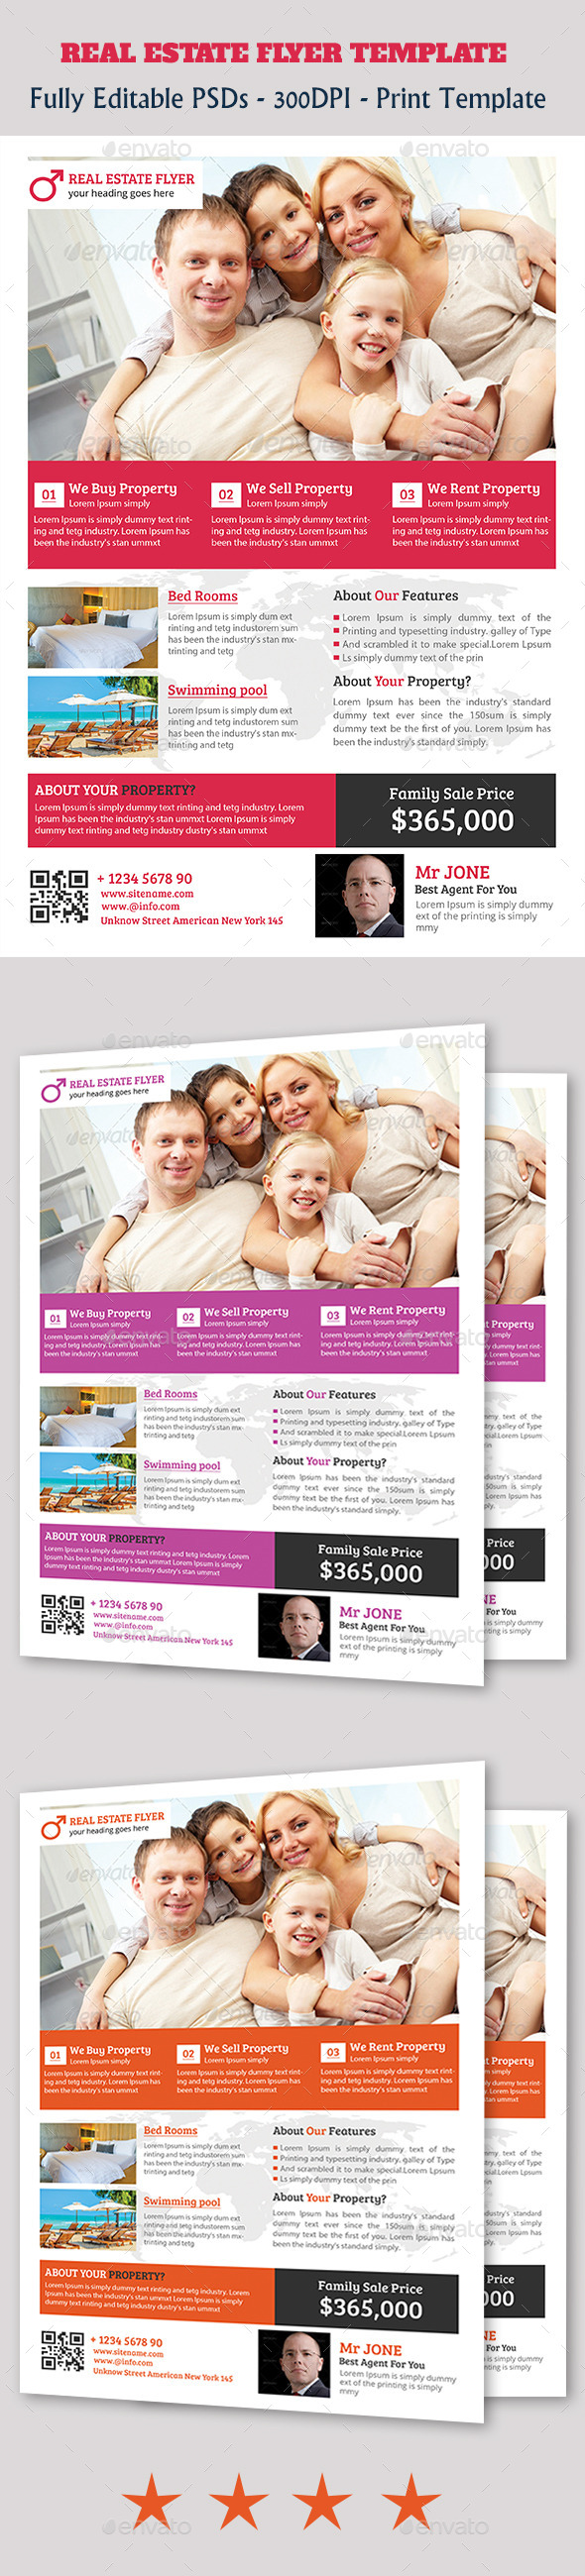 GraphicRiver Premium Real Estate Flyer Temp 11202535